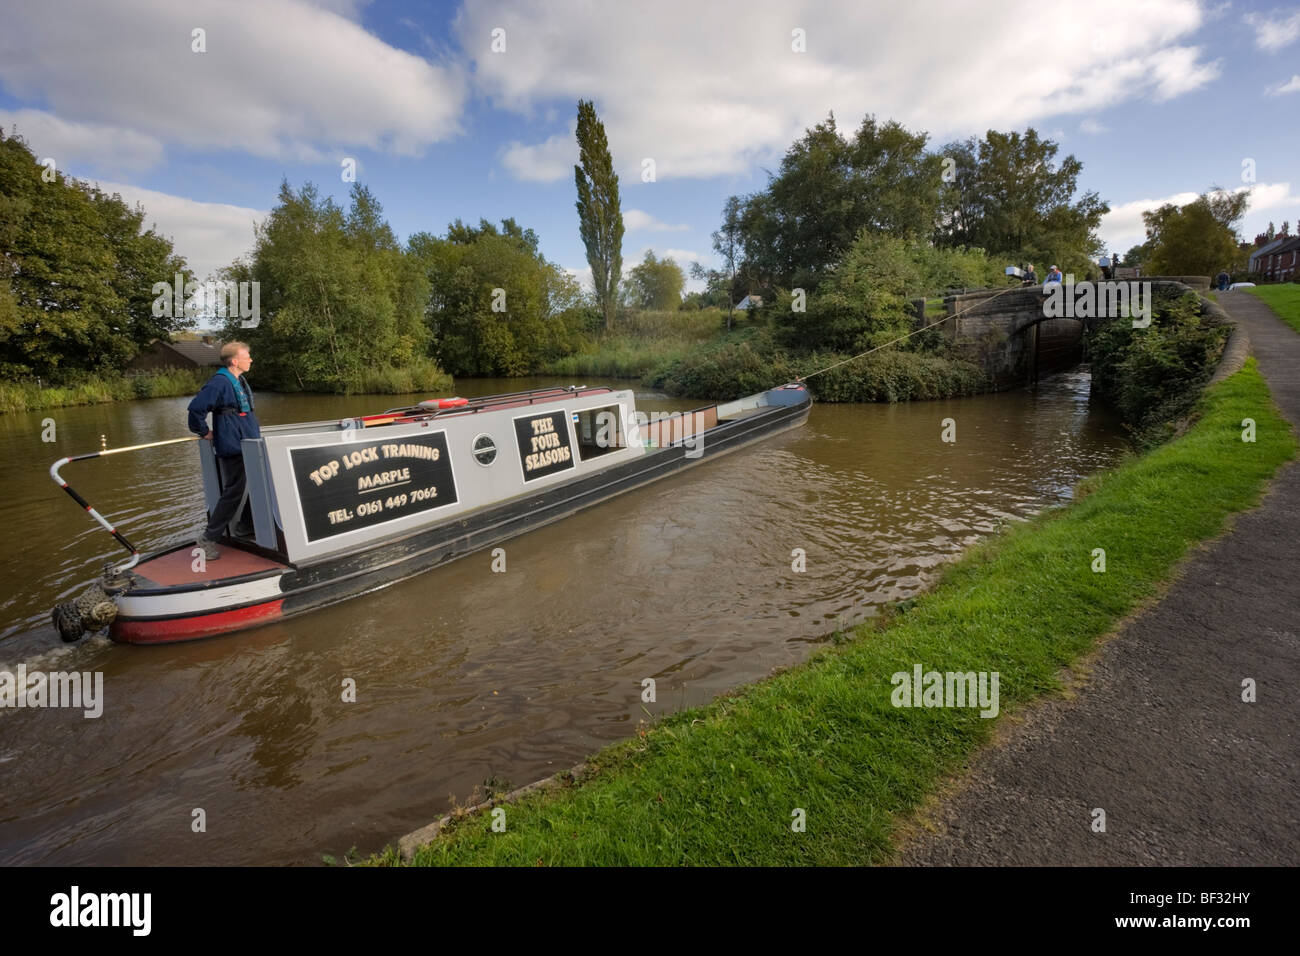 Student receiving instruction on a canal boat in the lock flight at Marple, Cheshire - Stock Image